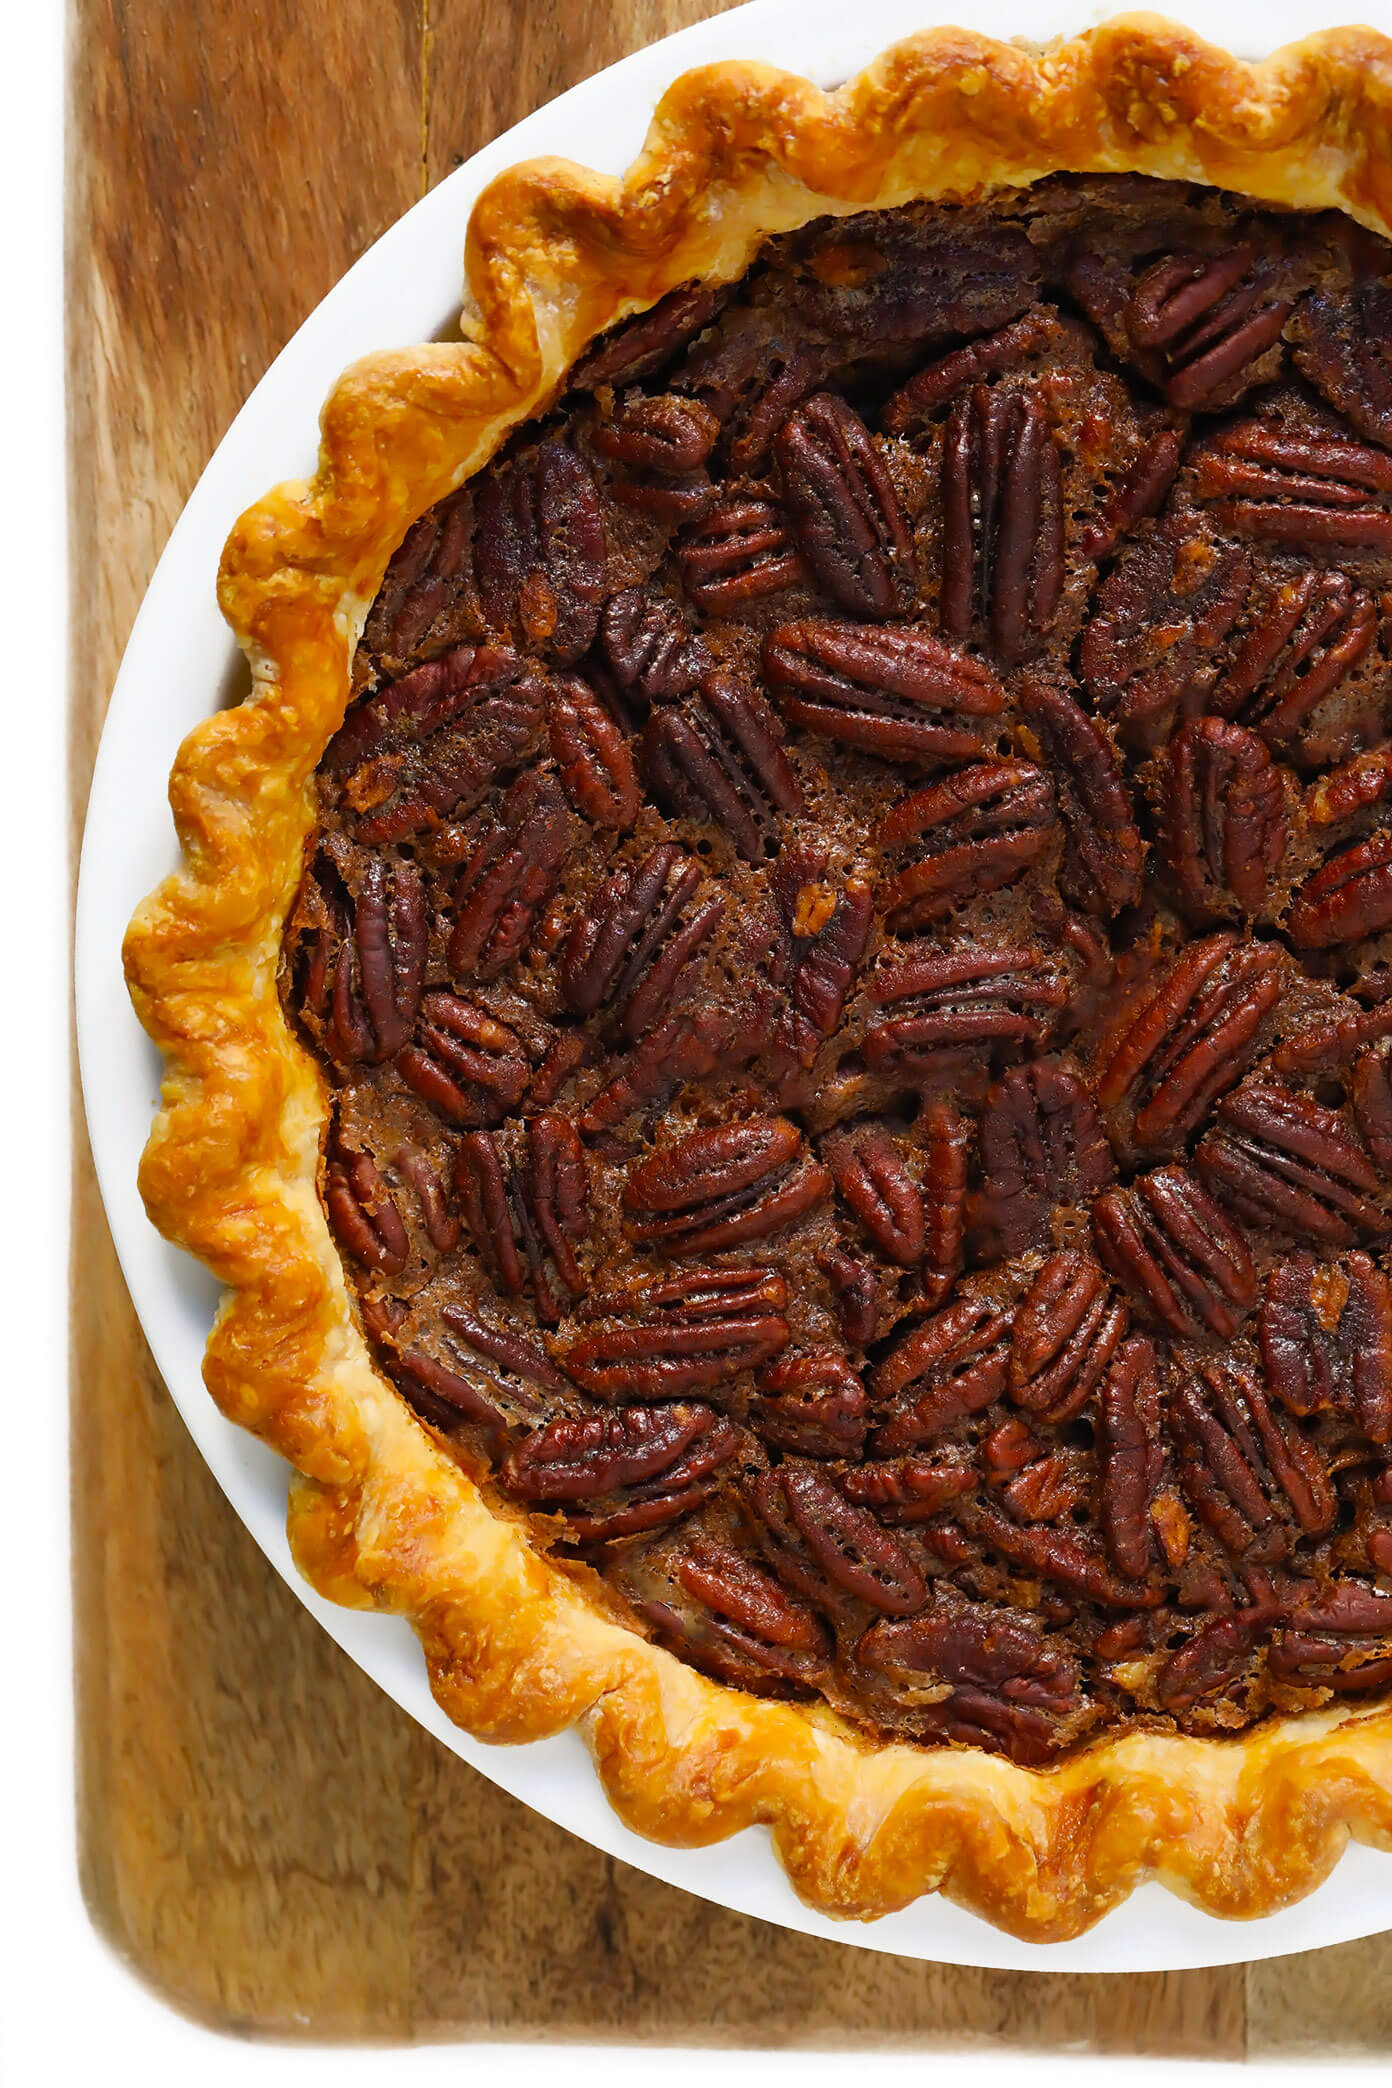 How To Make Pecan Pie Without Corn Syrup